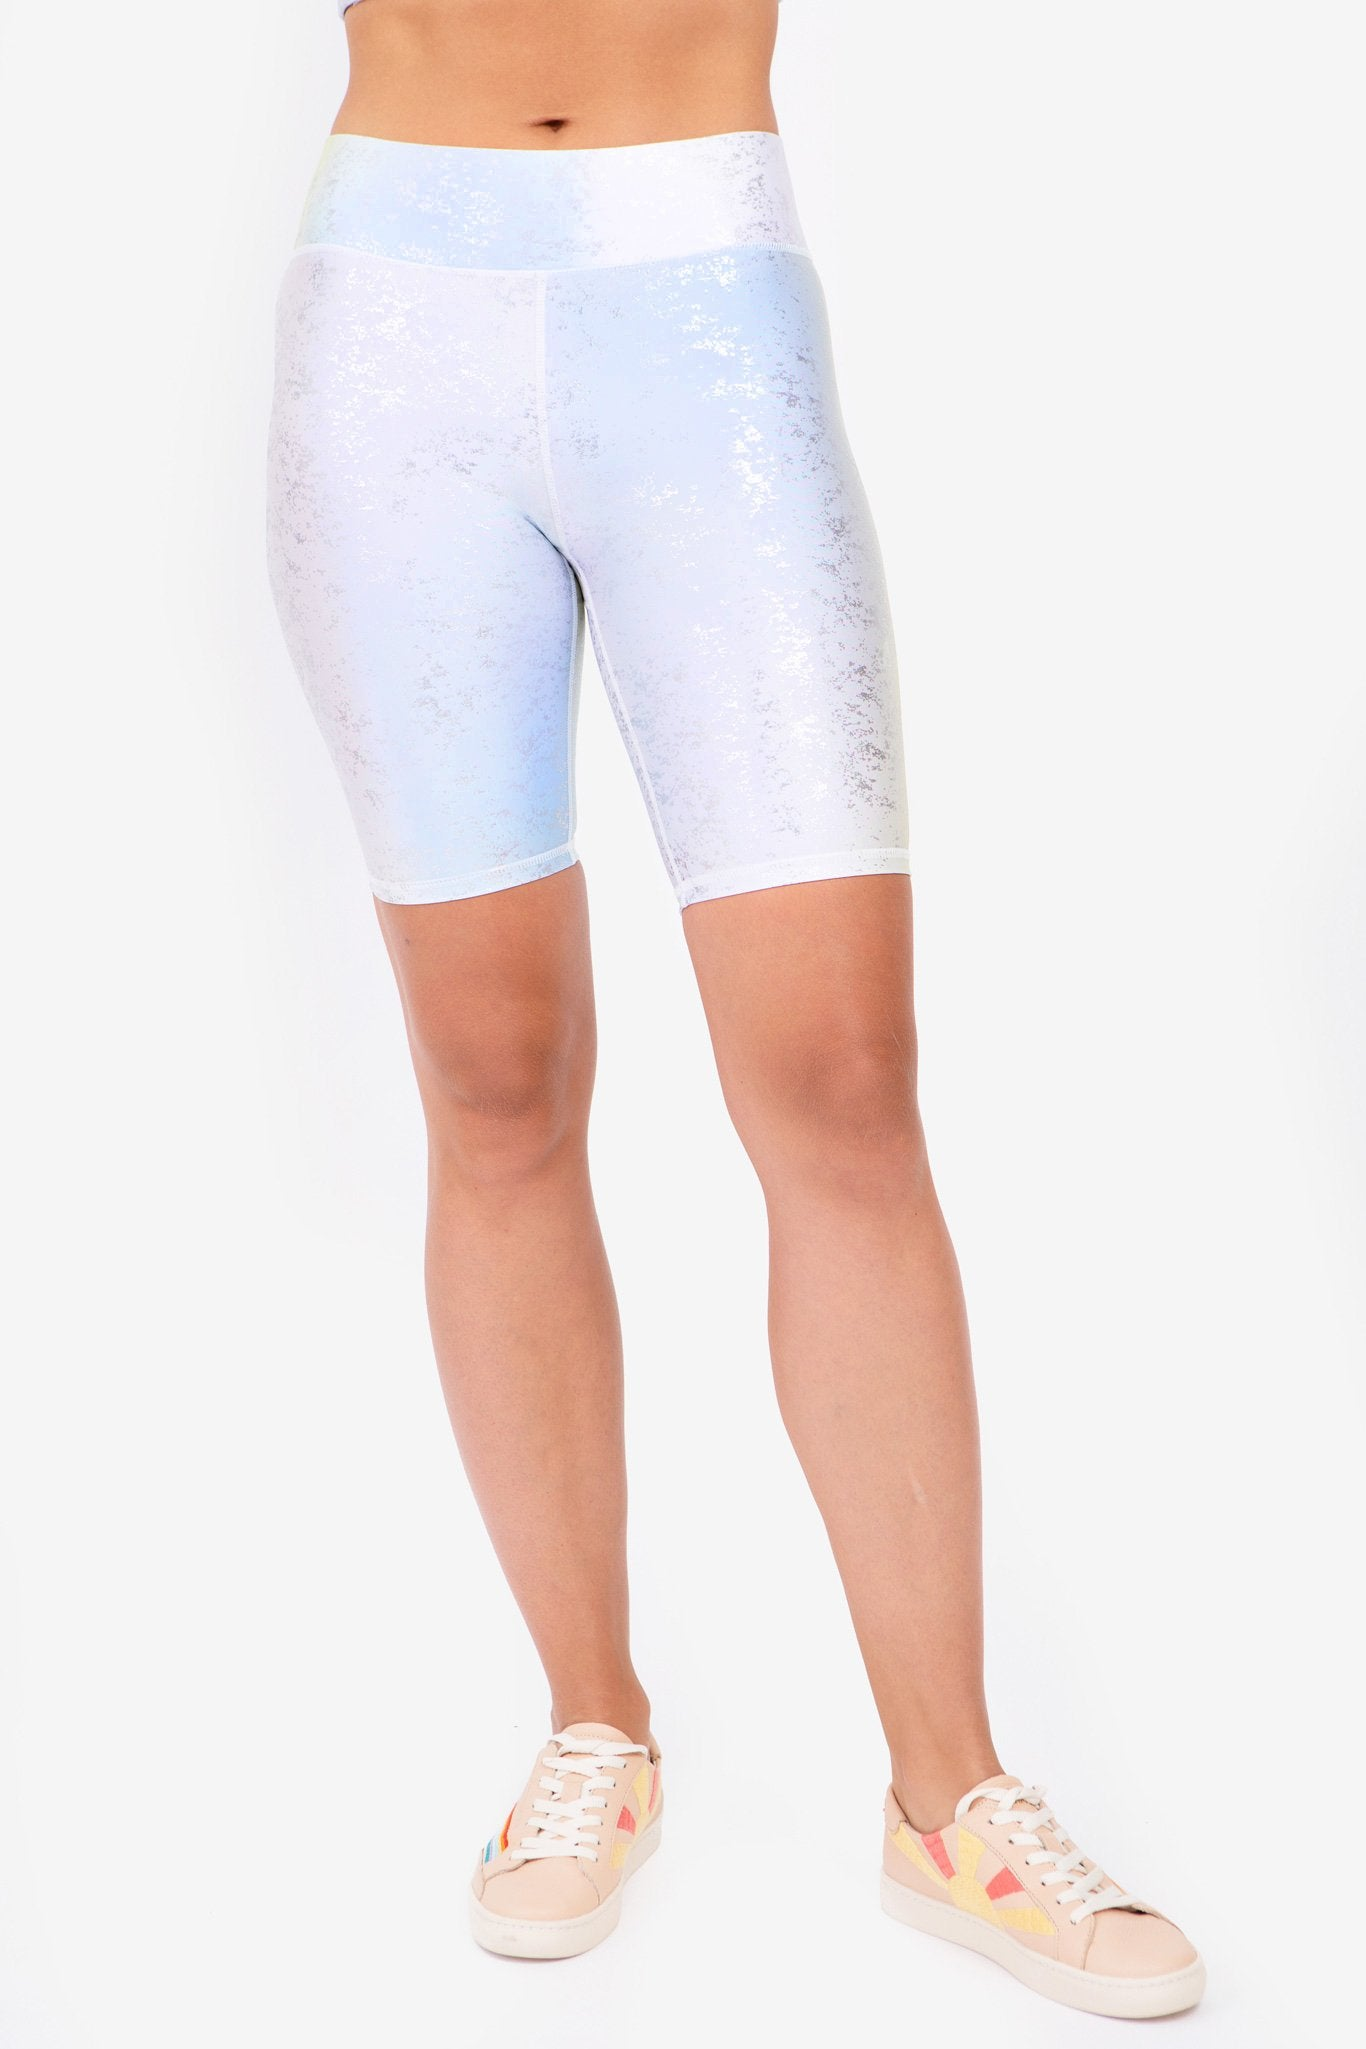 Sundown Silver Haze Foil Balayage Bike Shorts